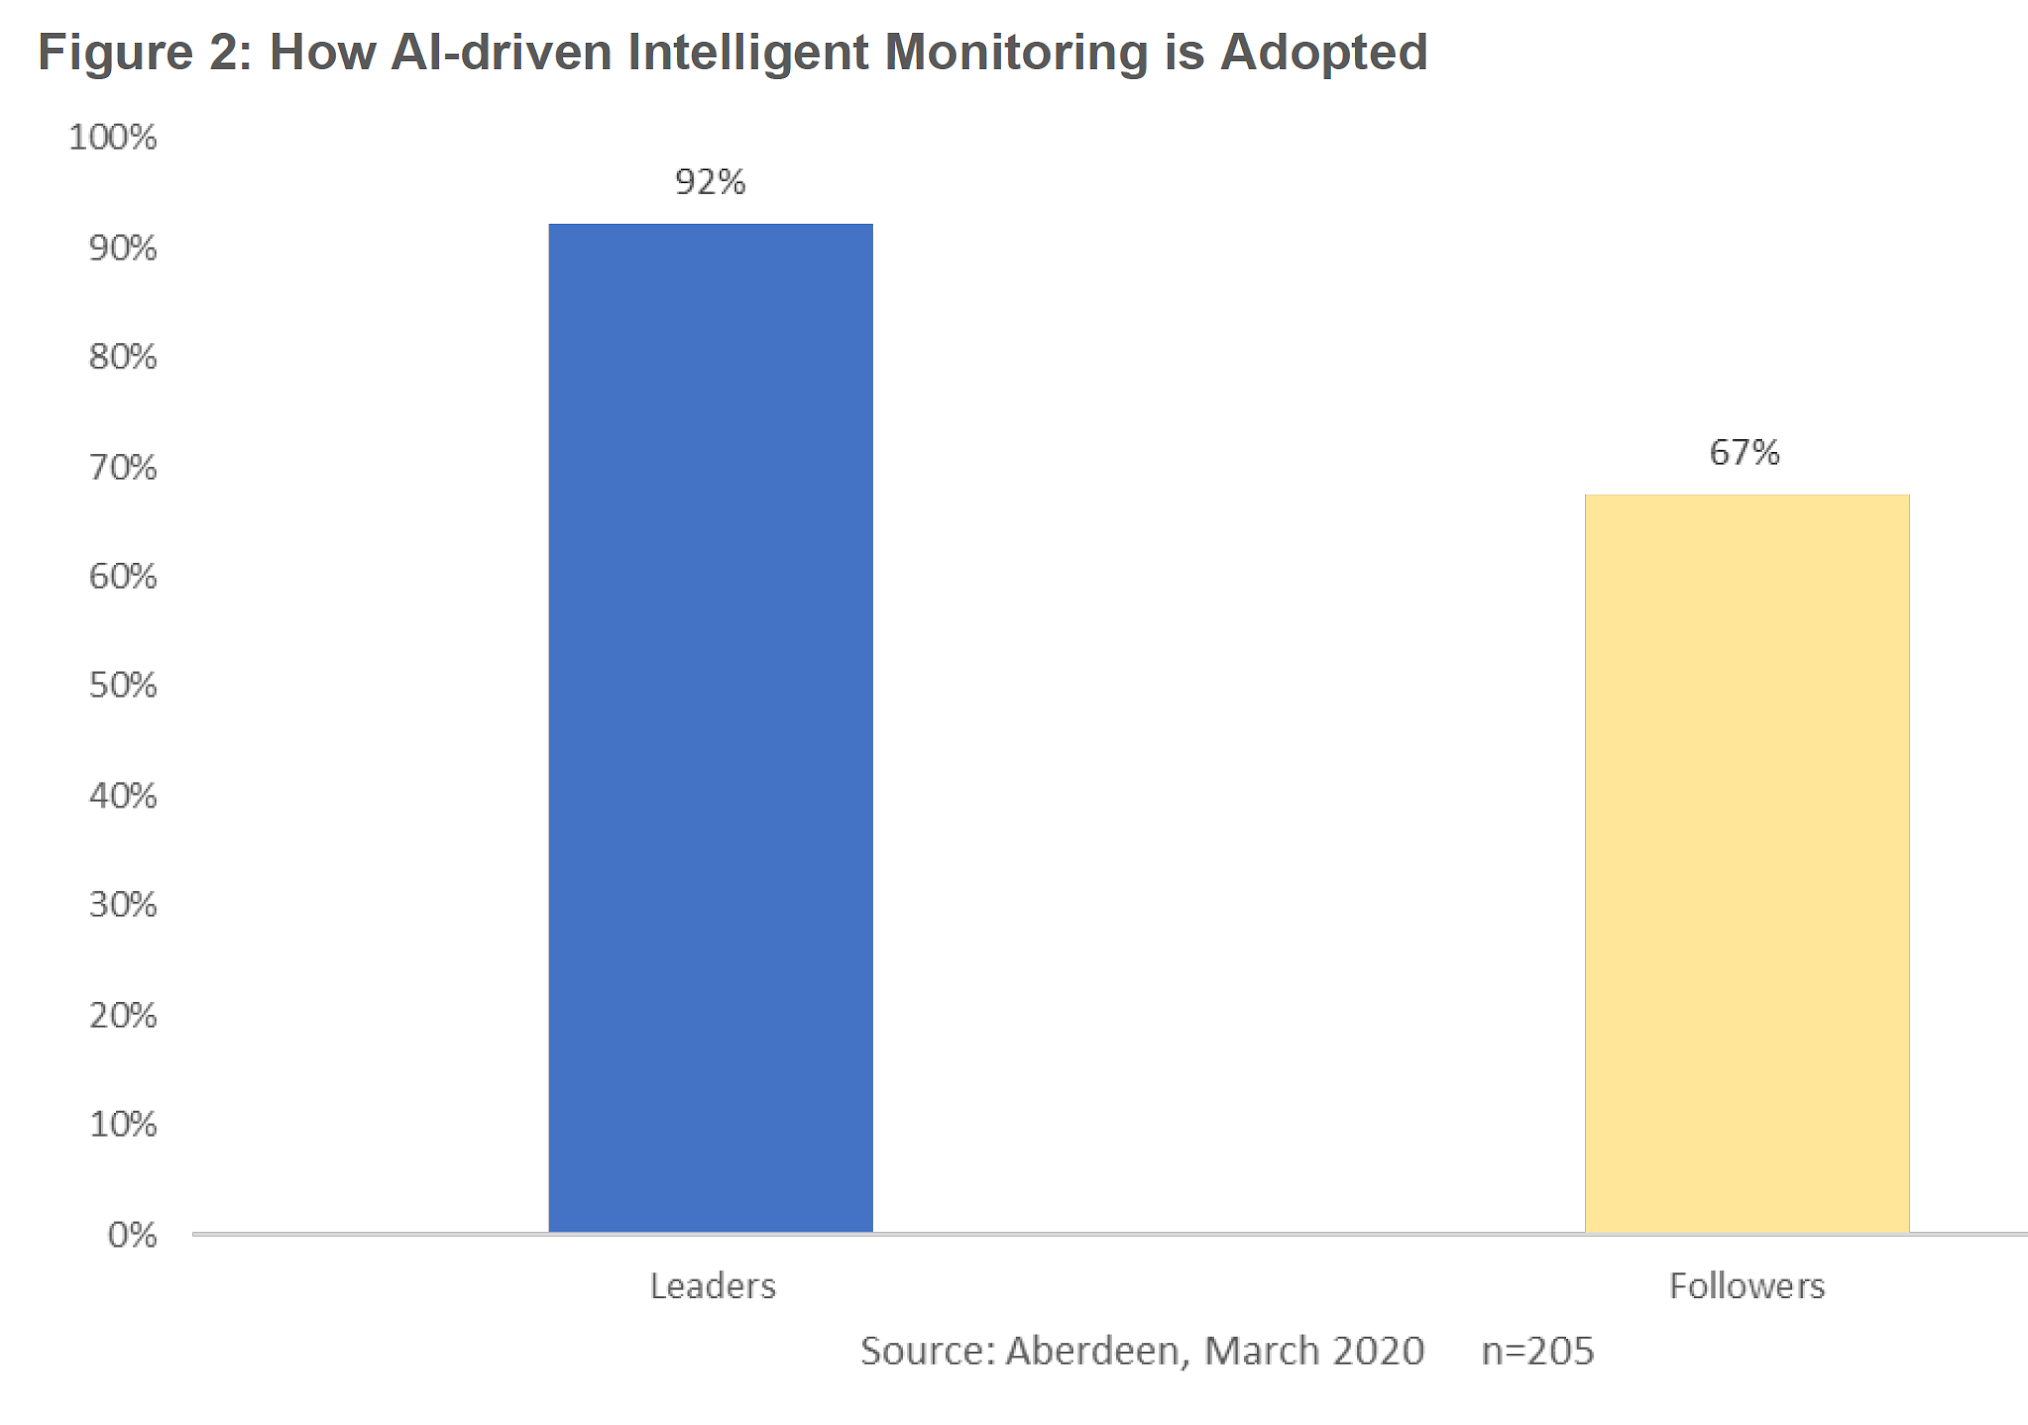 Figure 2: How AI-driven Intelligent Monitoring is Adopted